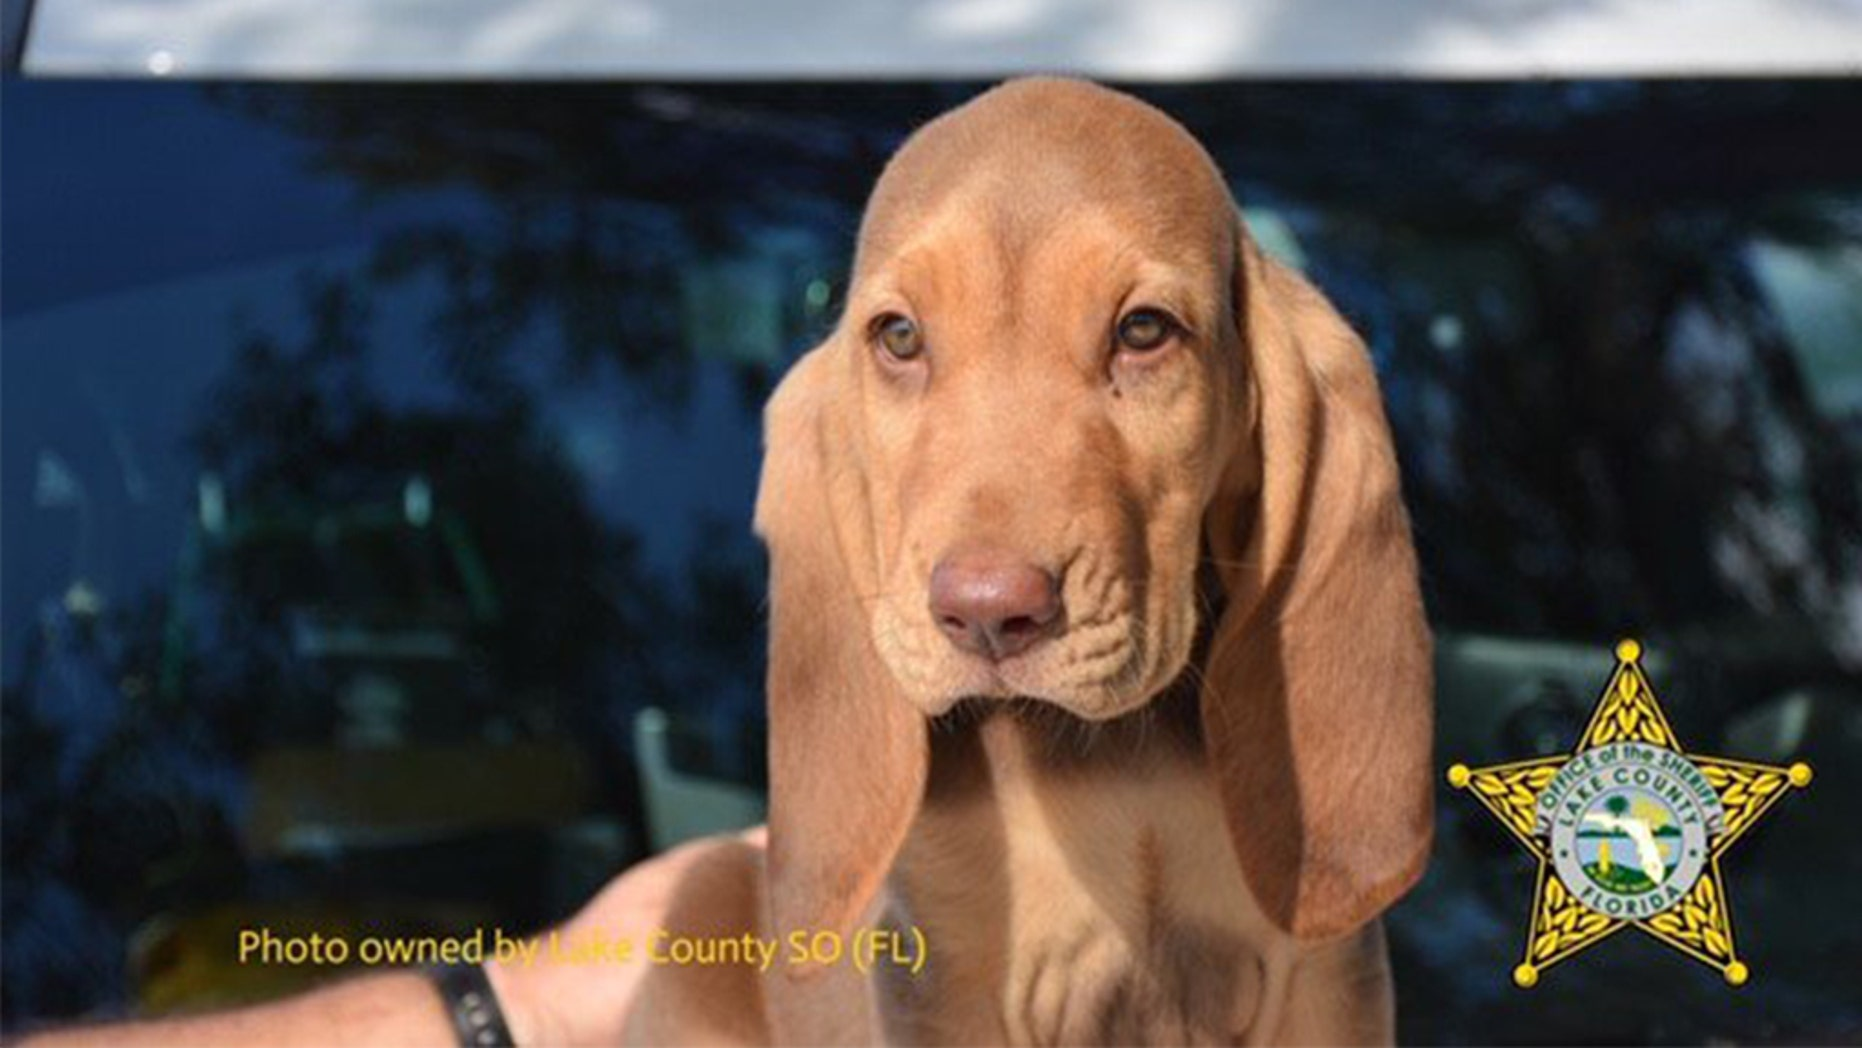 Westlake Legal Group Rommel-2 Florida sheriff's office bloodhound renamed from 'Rommel' to 'Scout' after complaints of Nazi connotations Nicole Darrah fox-news/us/us-regions/southeast/florida fox-news/us/crime/police-and-law-enforcement fox-news/topic/world-war-two fox-news/topic/holocaust fox-news/odd-news fox news fnc/us fnc da1ddec4-eded-5ce6-8ade-a0d3a72536b1 article